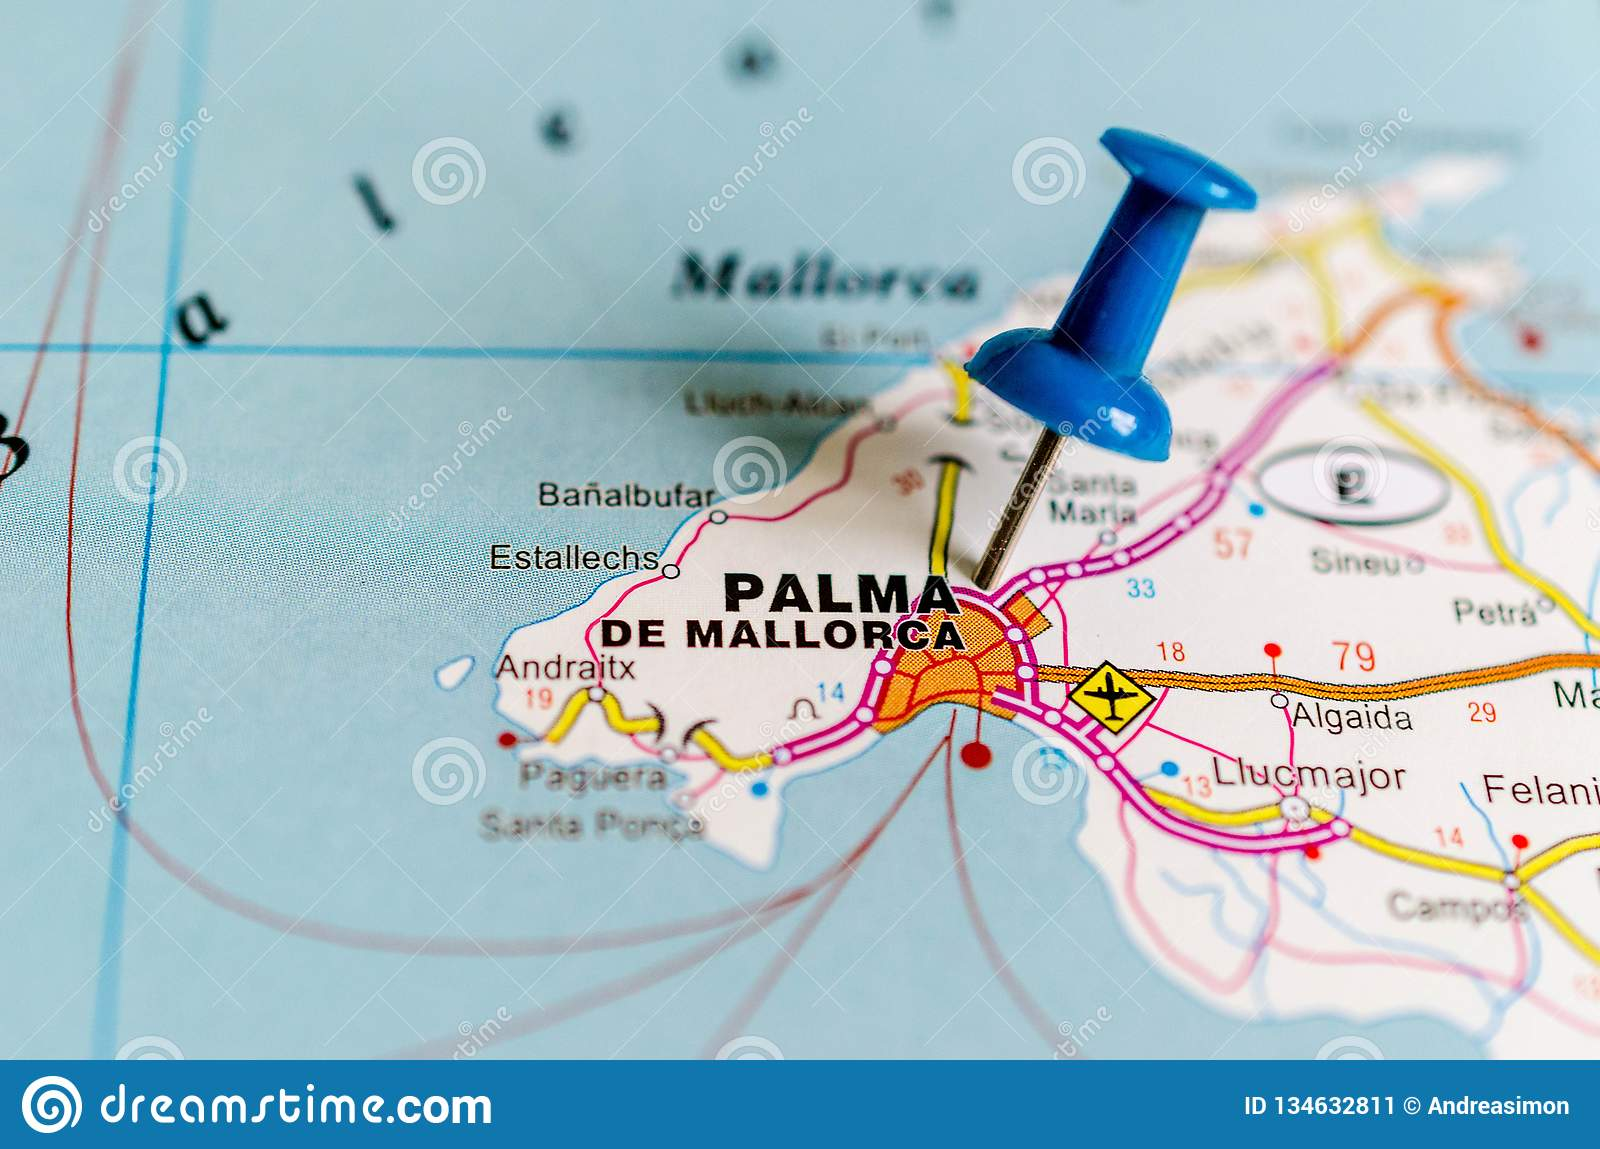 Map Of Spain Majorca.Palma De Mallorca On Map Stock Image Image Of Atlas 134632811